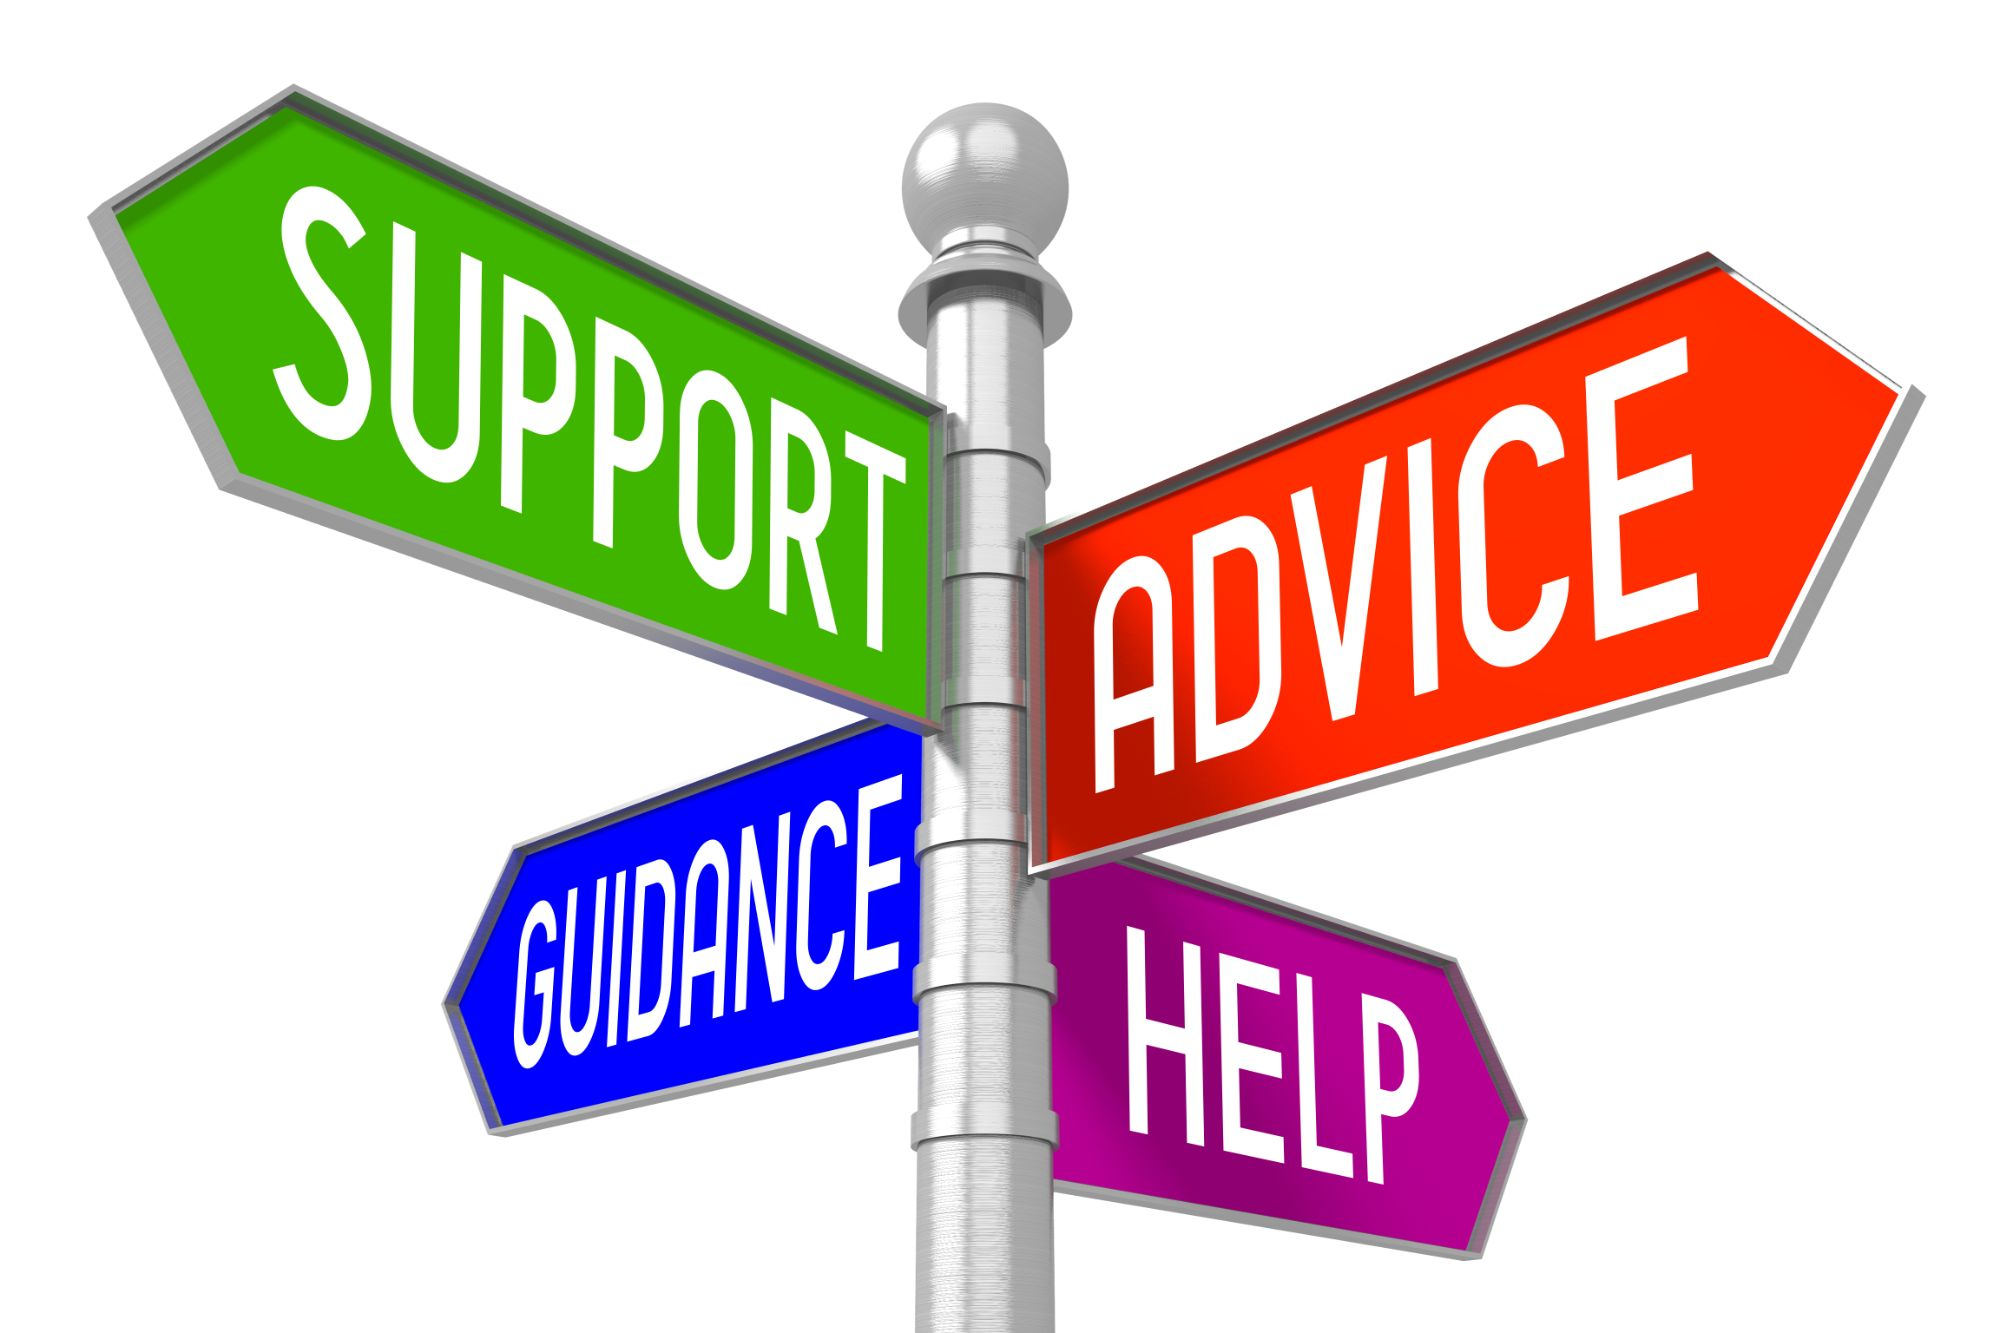 Sign Support Guidance Advice Help